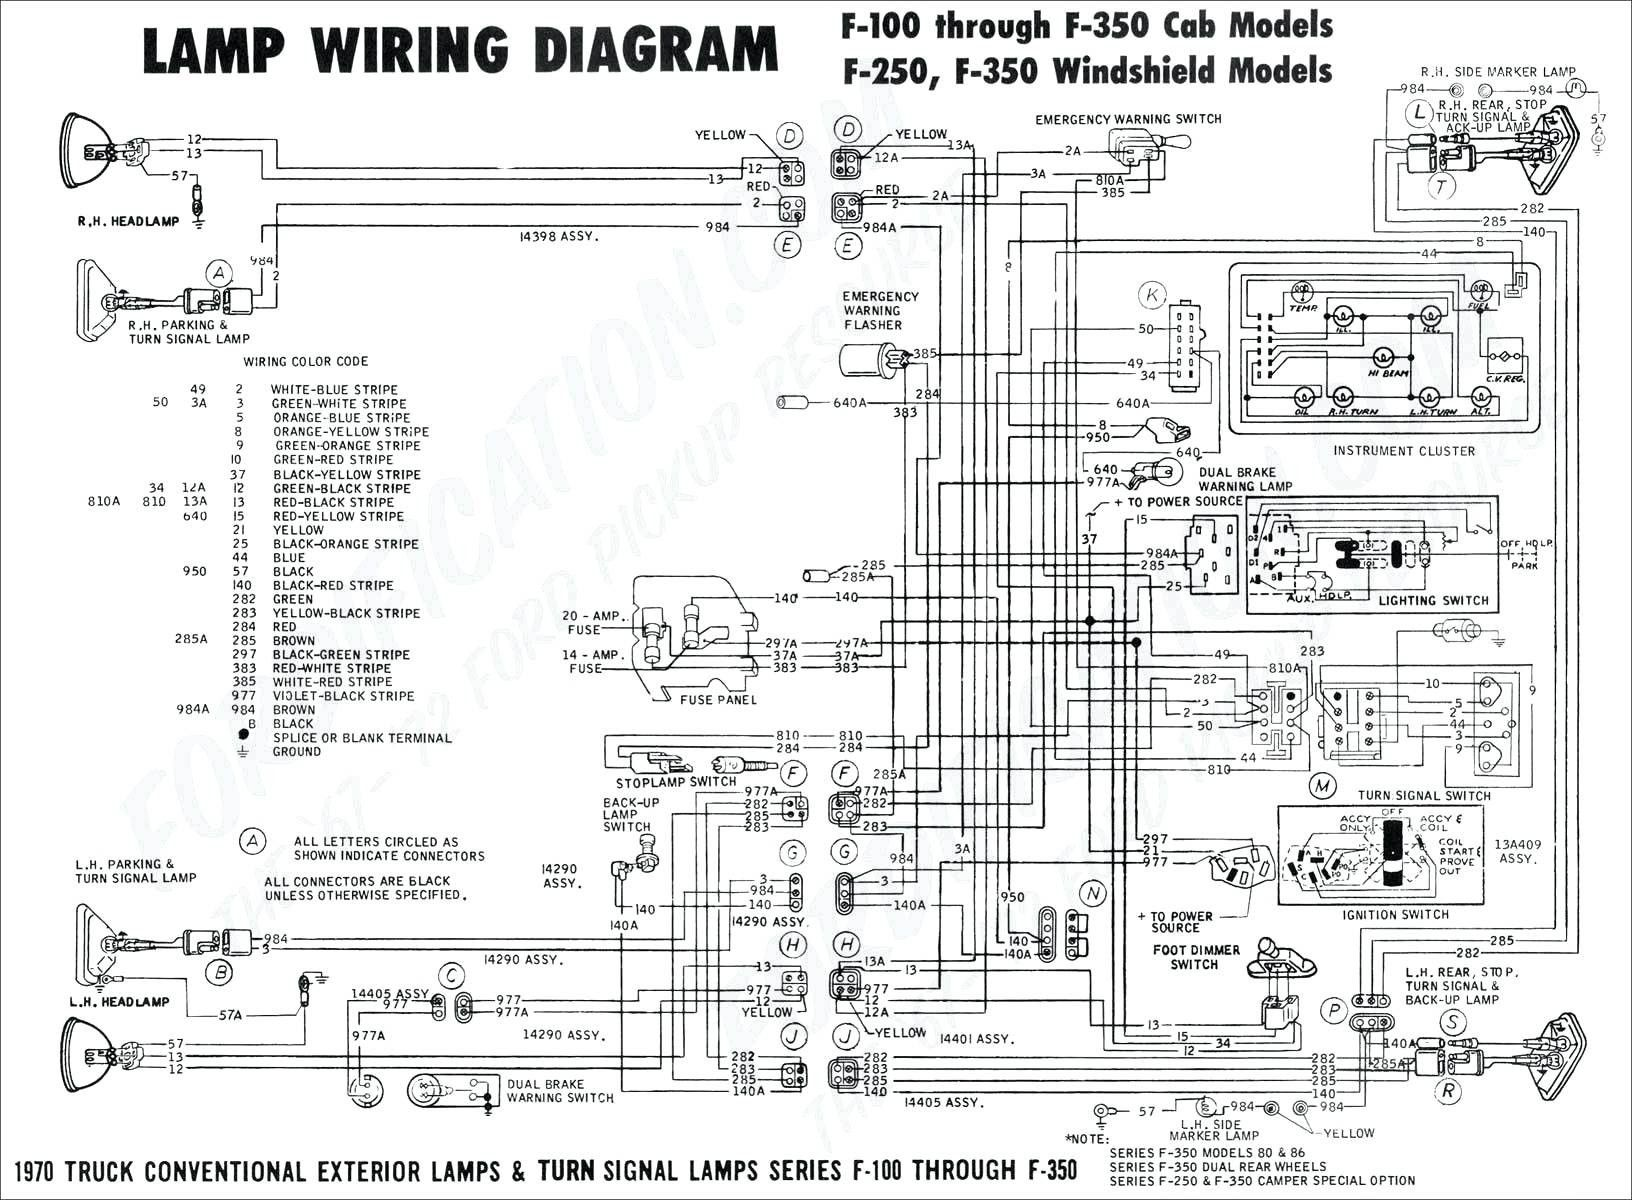 New Wiring Diagram Immersion Heater Switch Electrical Wiring Diagram Diagram Trailer Wiring Diagram